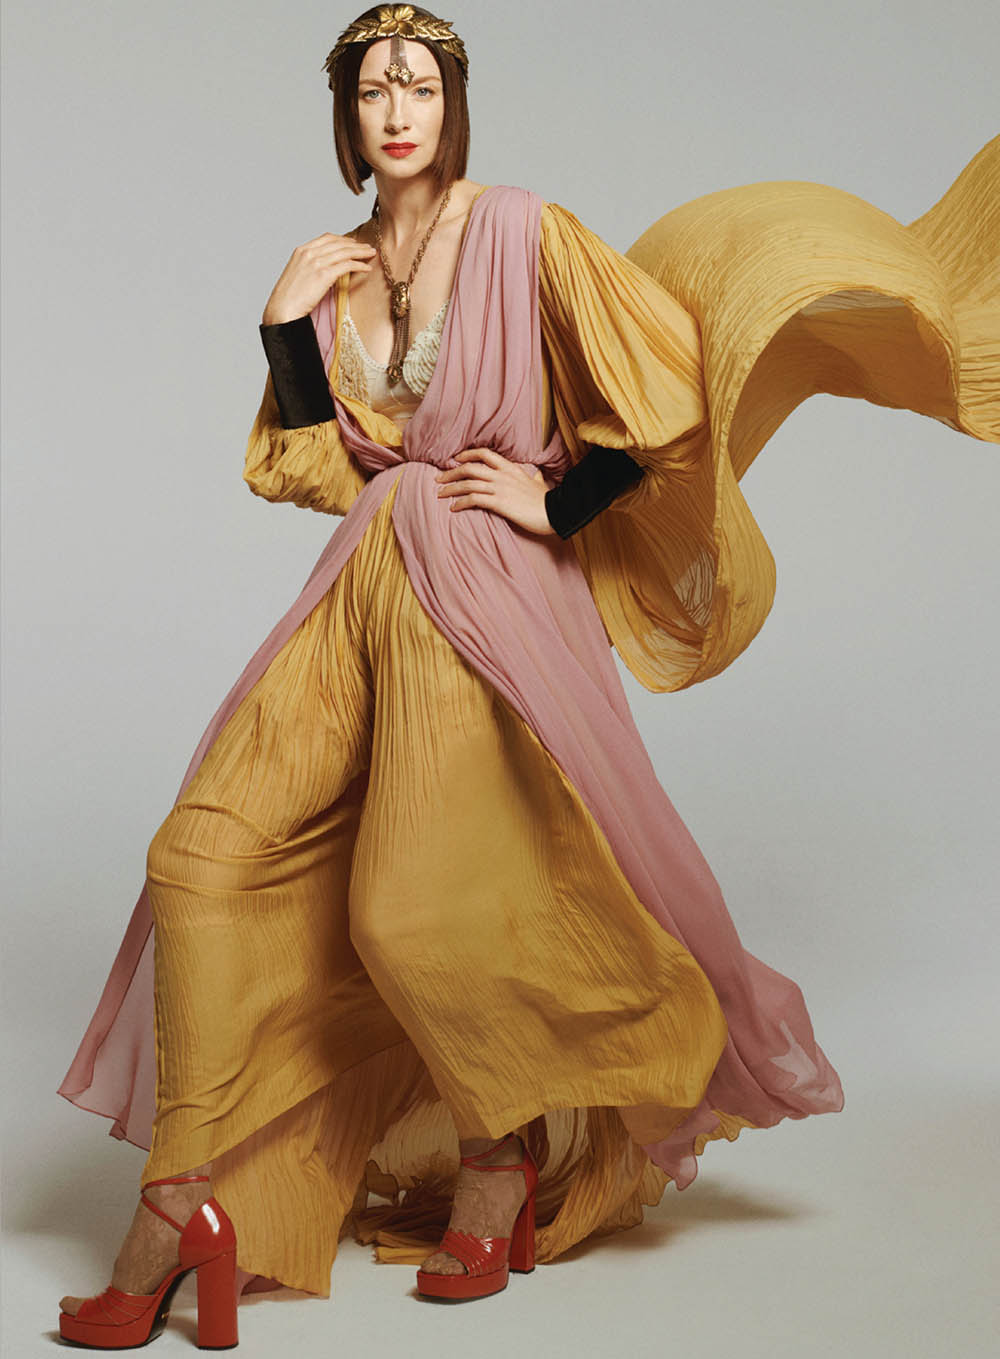 Caitriona Balfe by Philip Gay for InStyle US November 2019